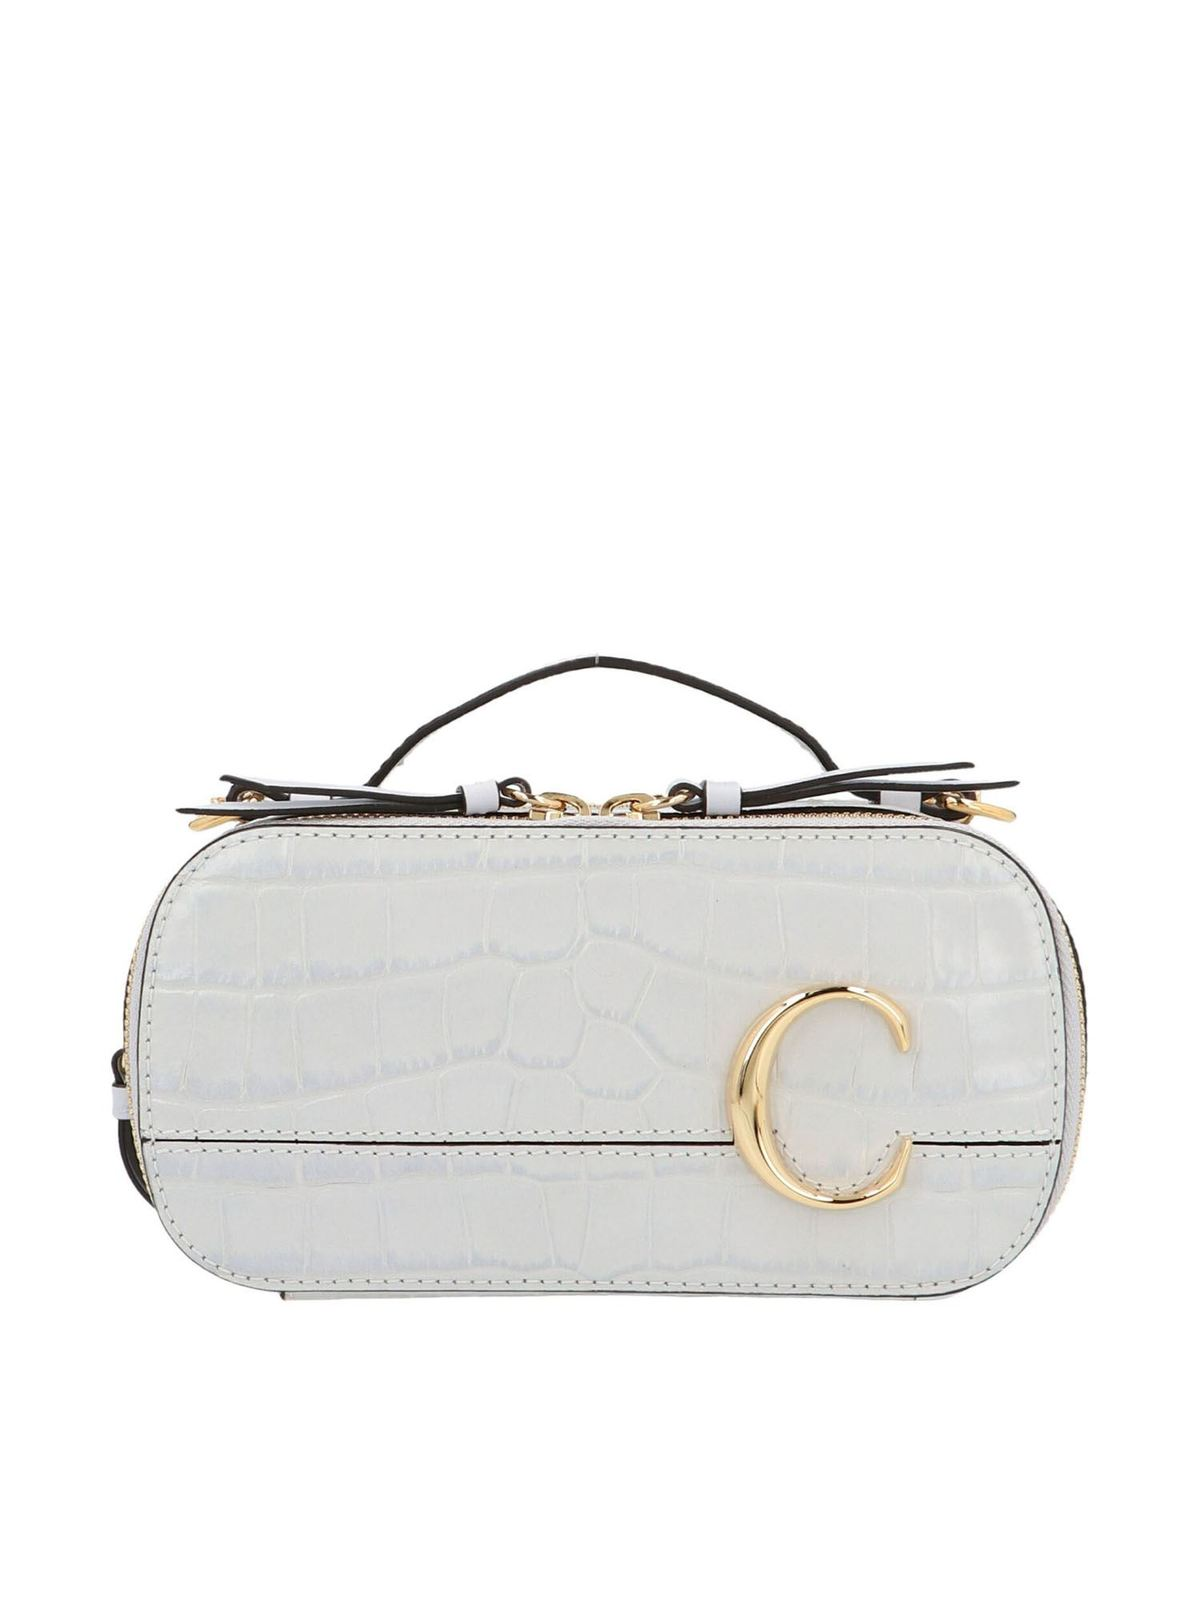 Chloé CHLOE C MINI CROSSBODY BAG IN LIGHT CLOUD